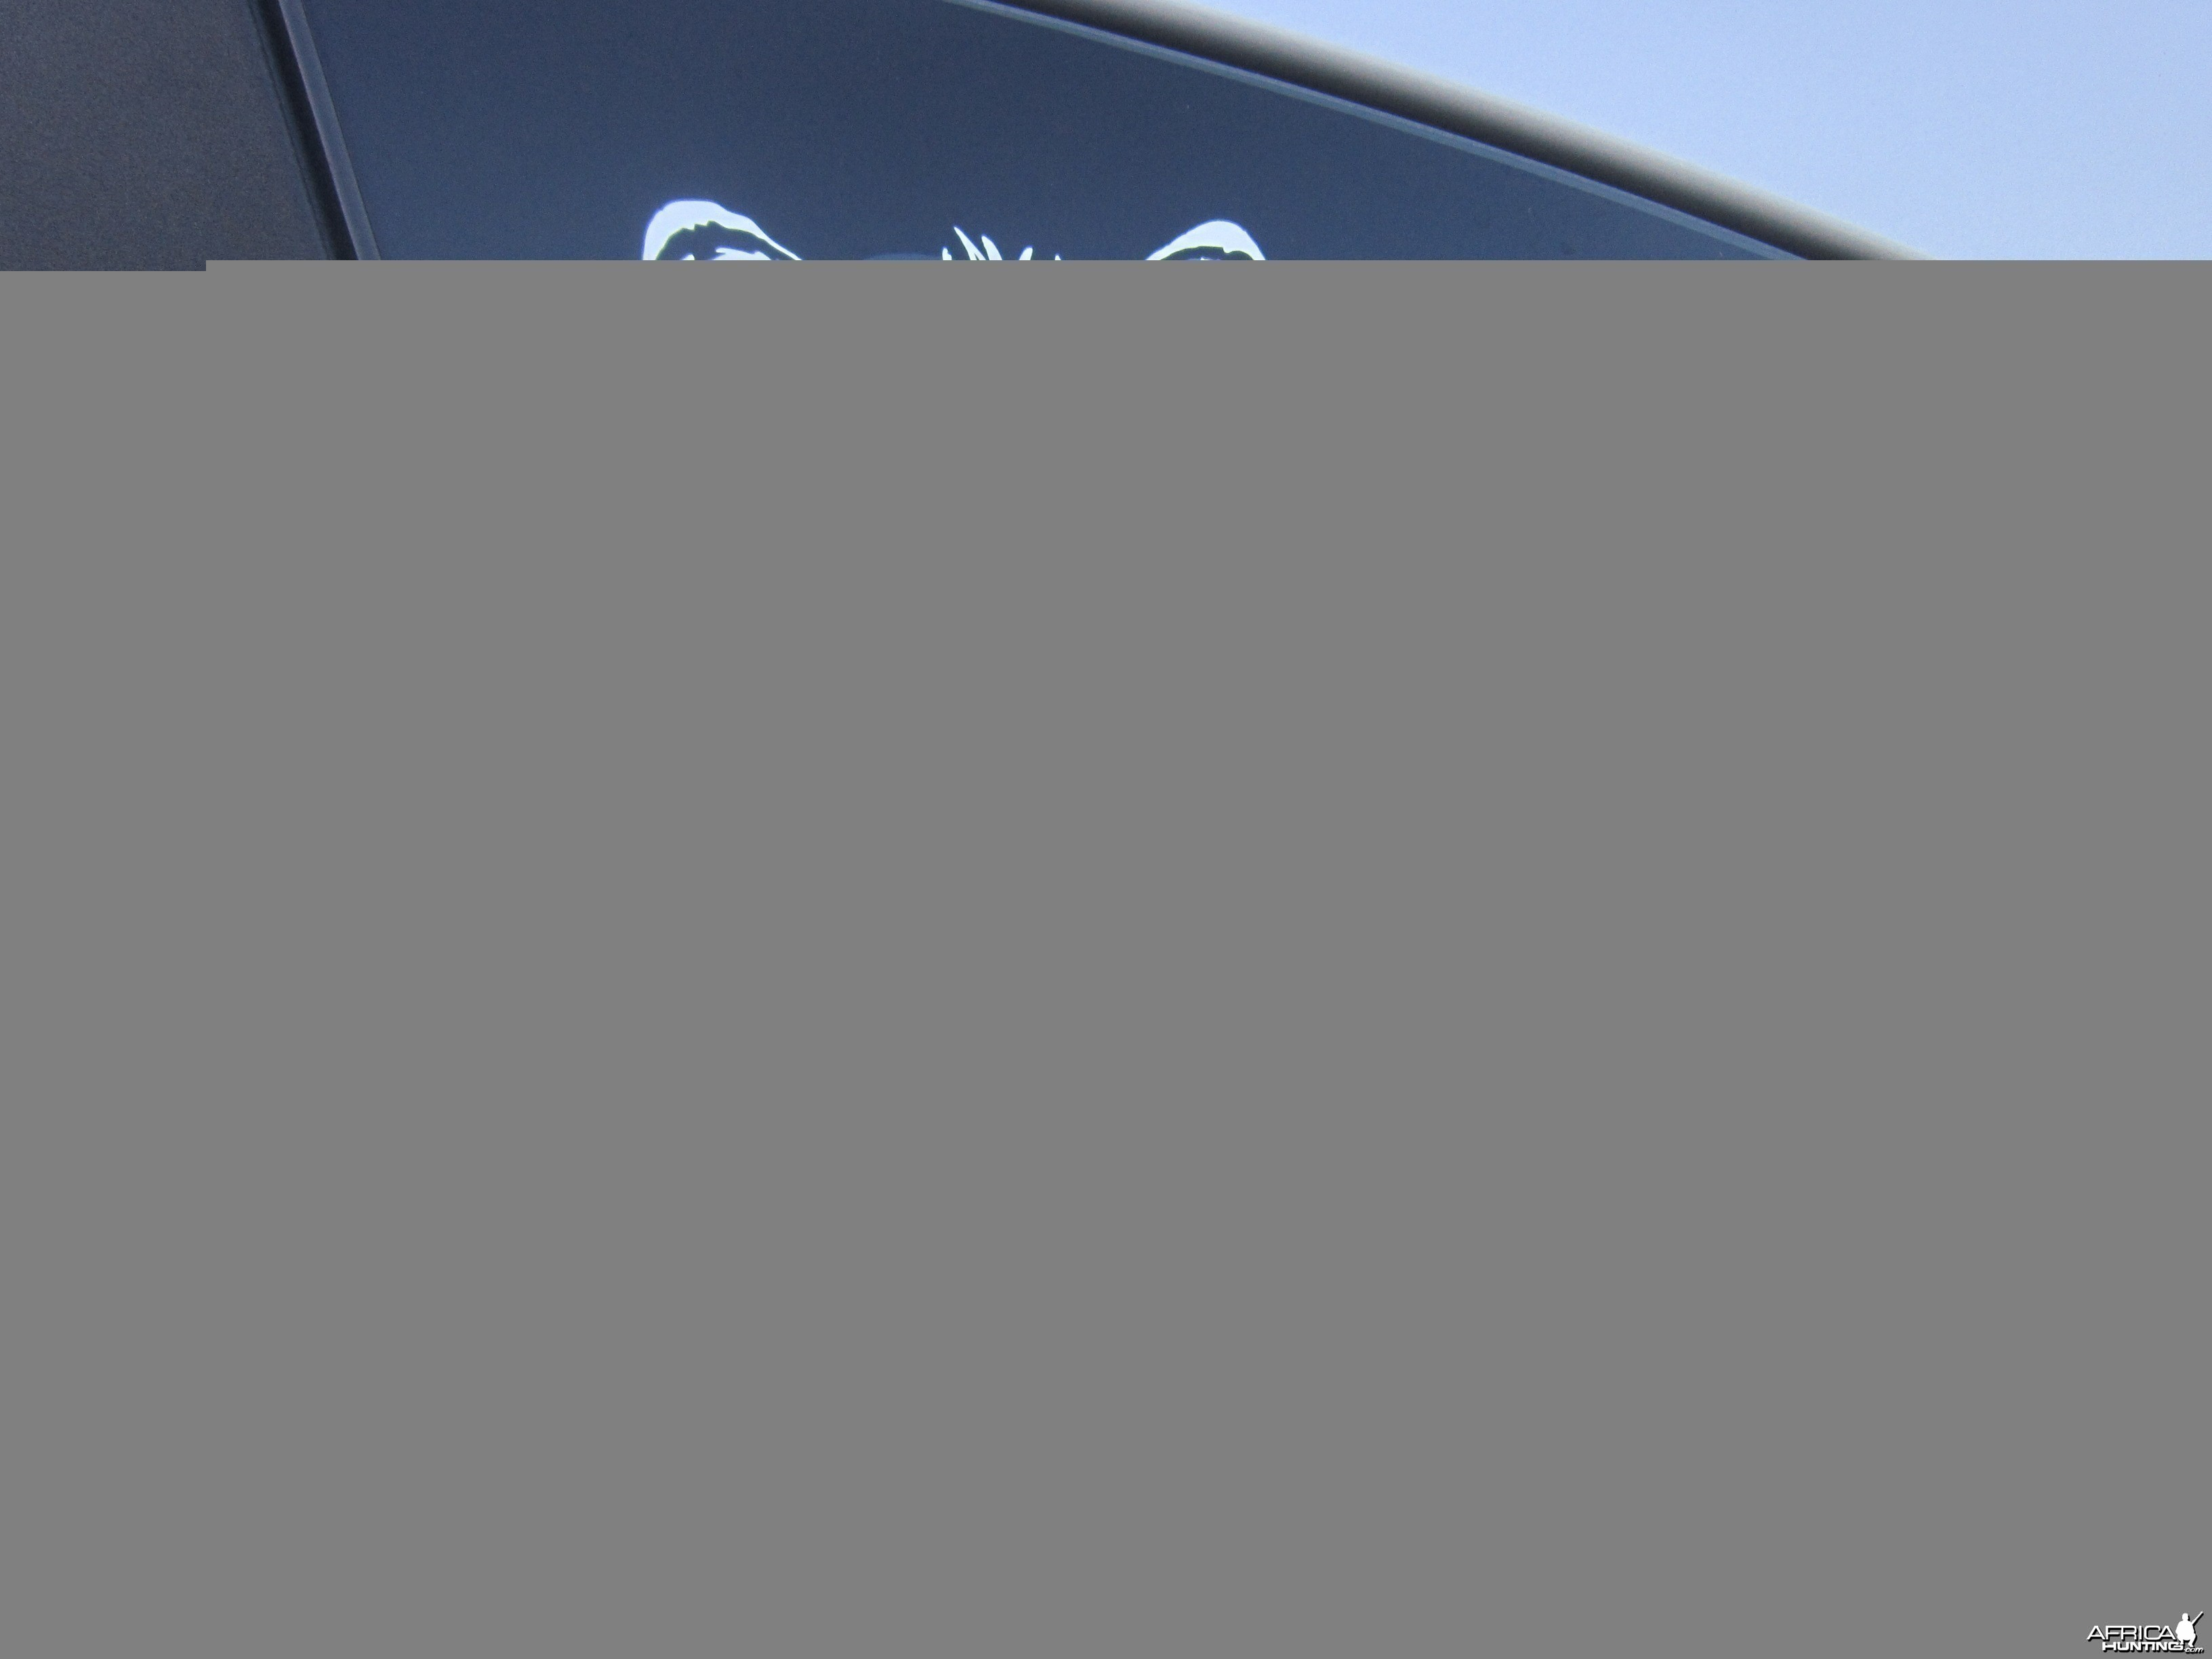 Zebra Decal Stickers